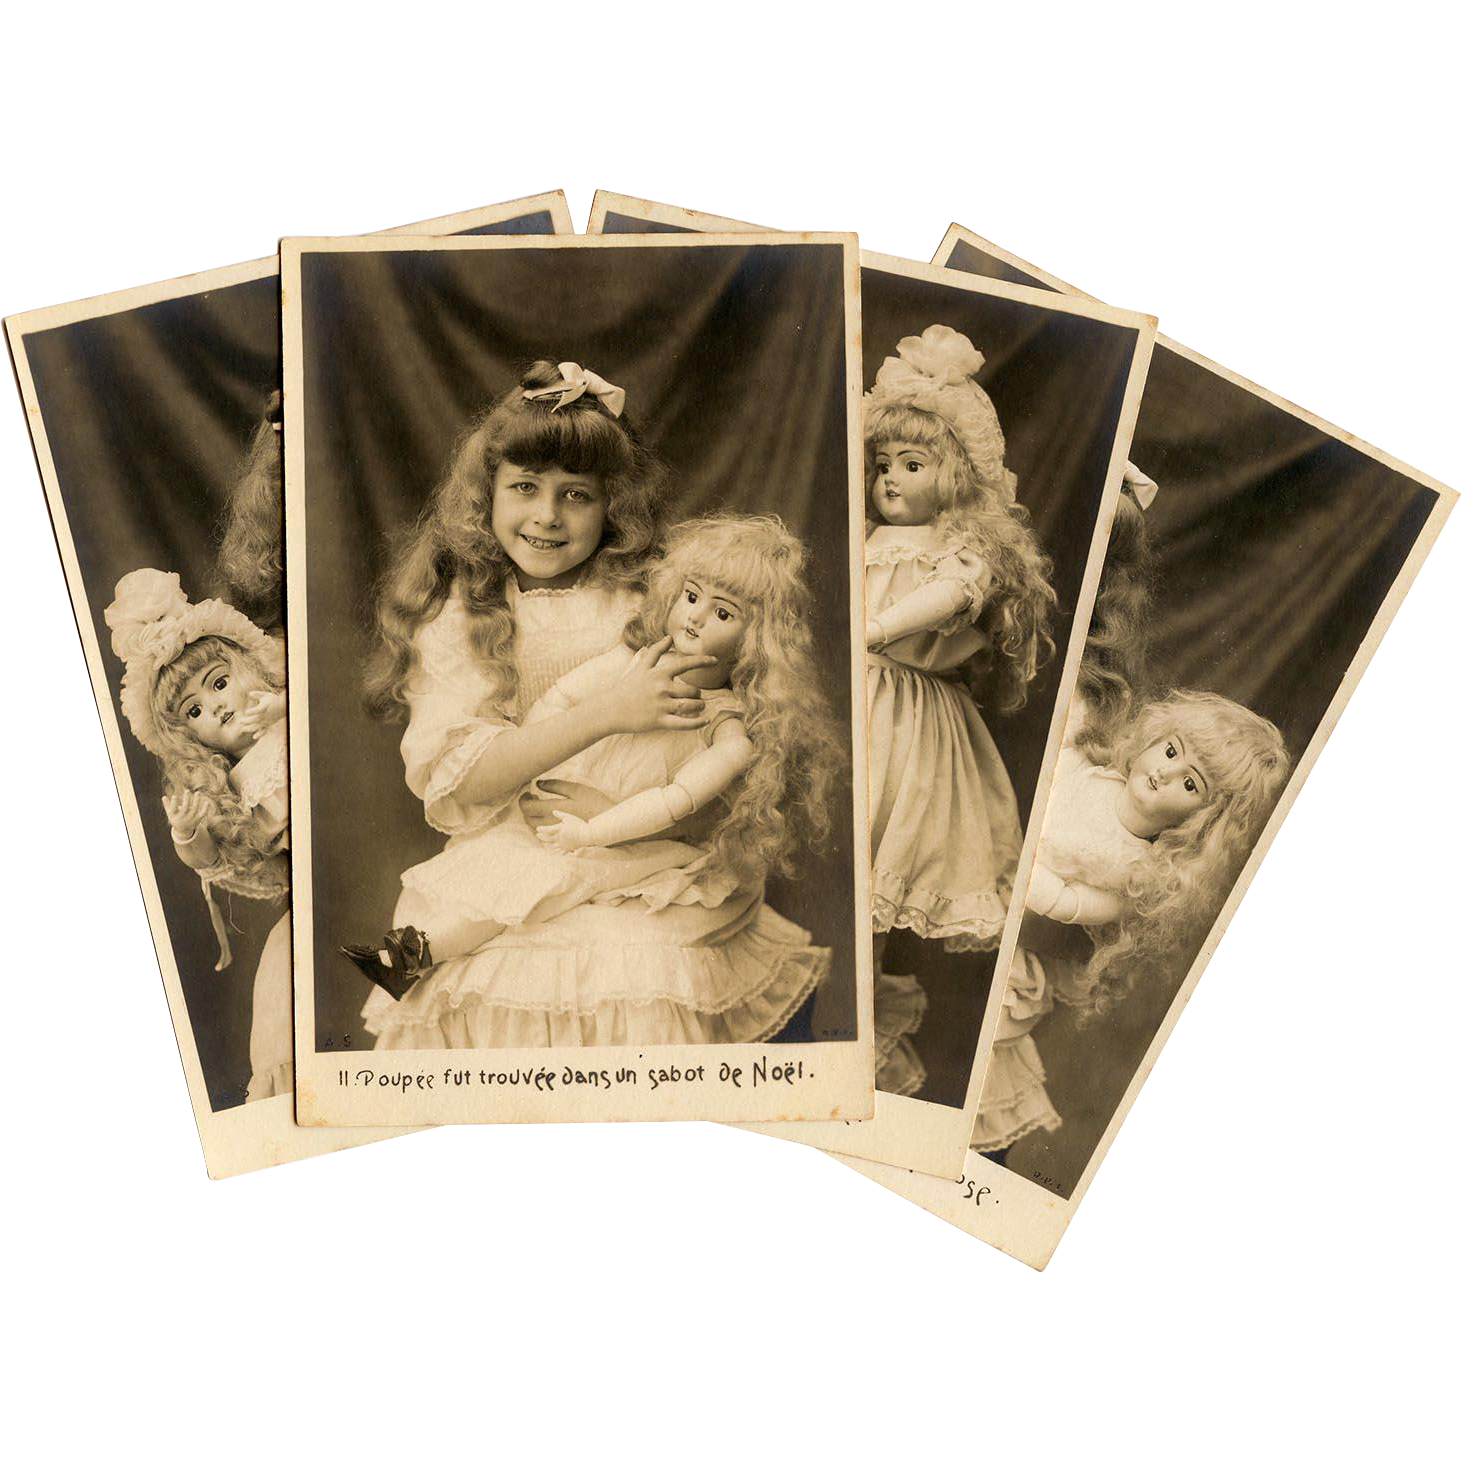 Complete Unused Series of 10 Antique French Postcards Edwardian Girl and her Poupée Bisque Doll